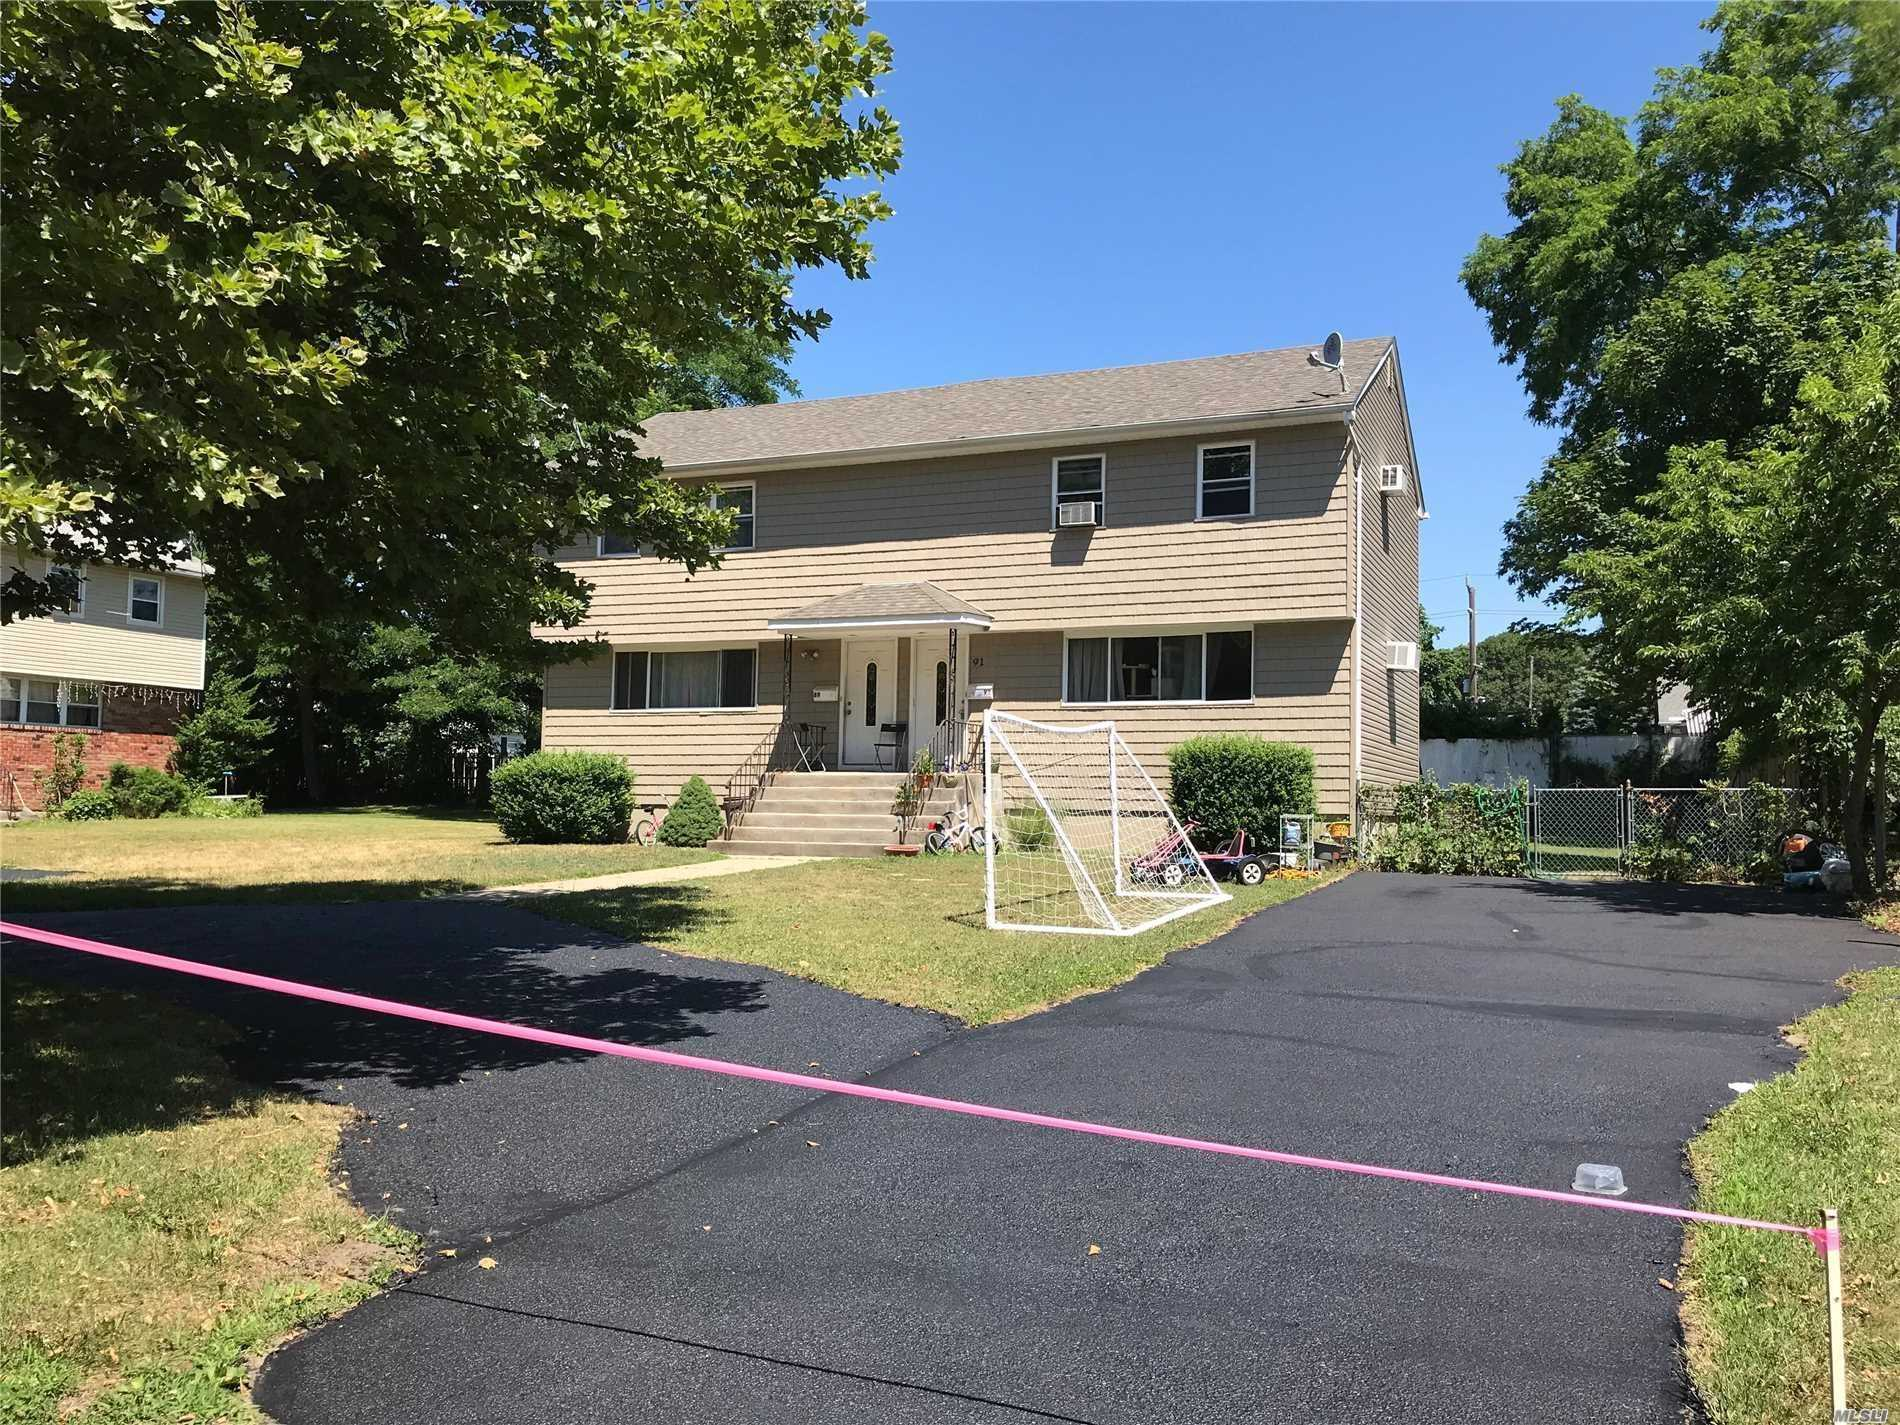 Photo of home for sale at 89-91 Washington St, East Islip NY